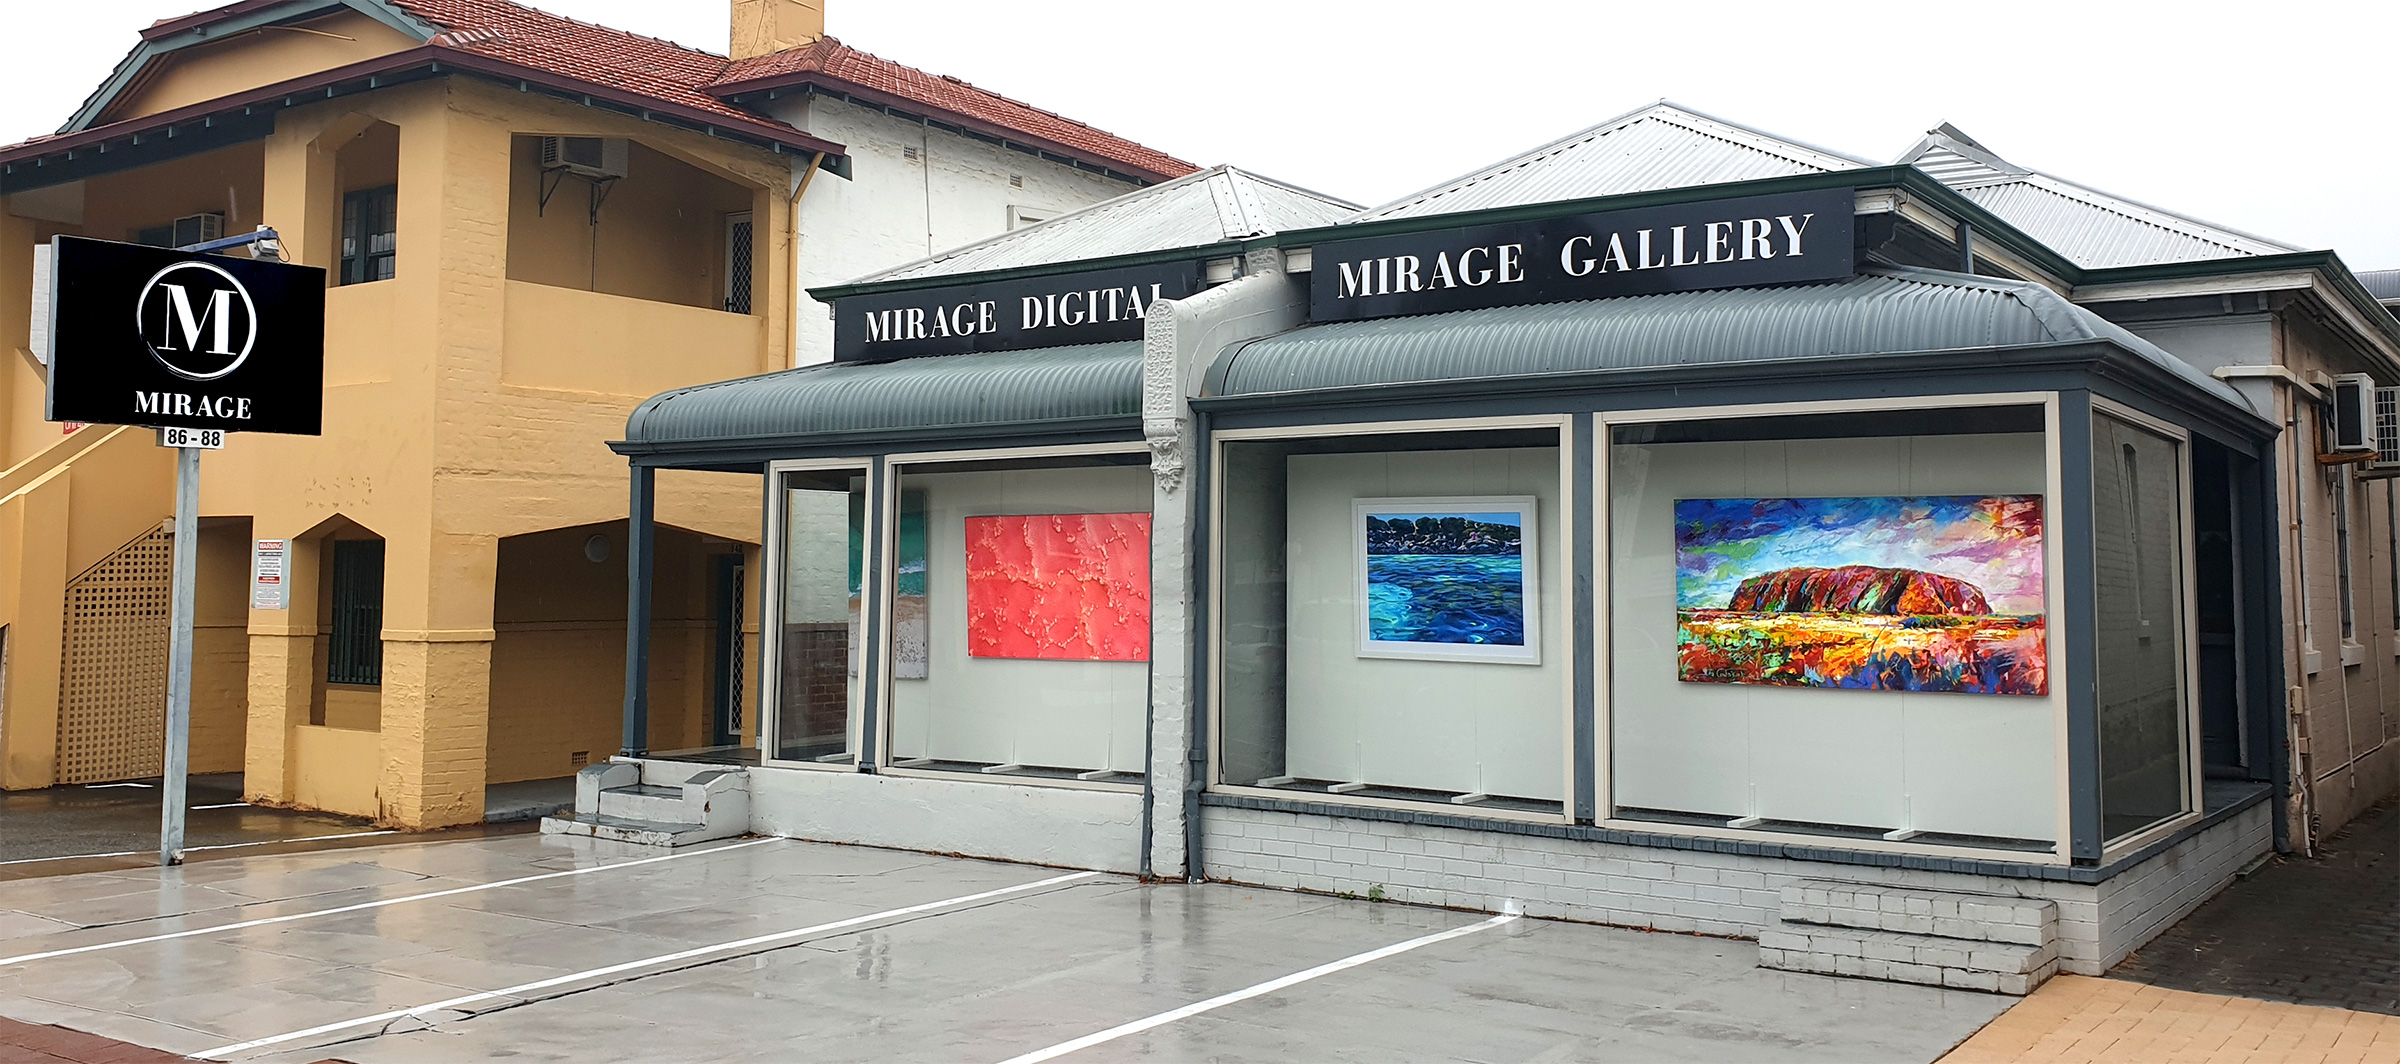 Mirage Gallery External at 45 Angle